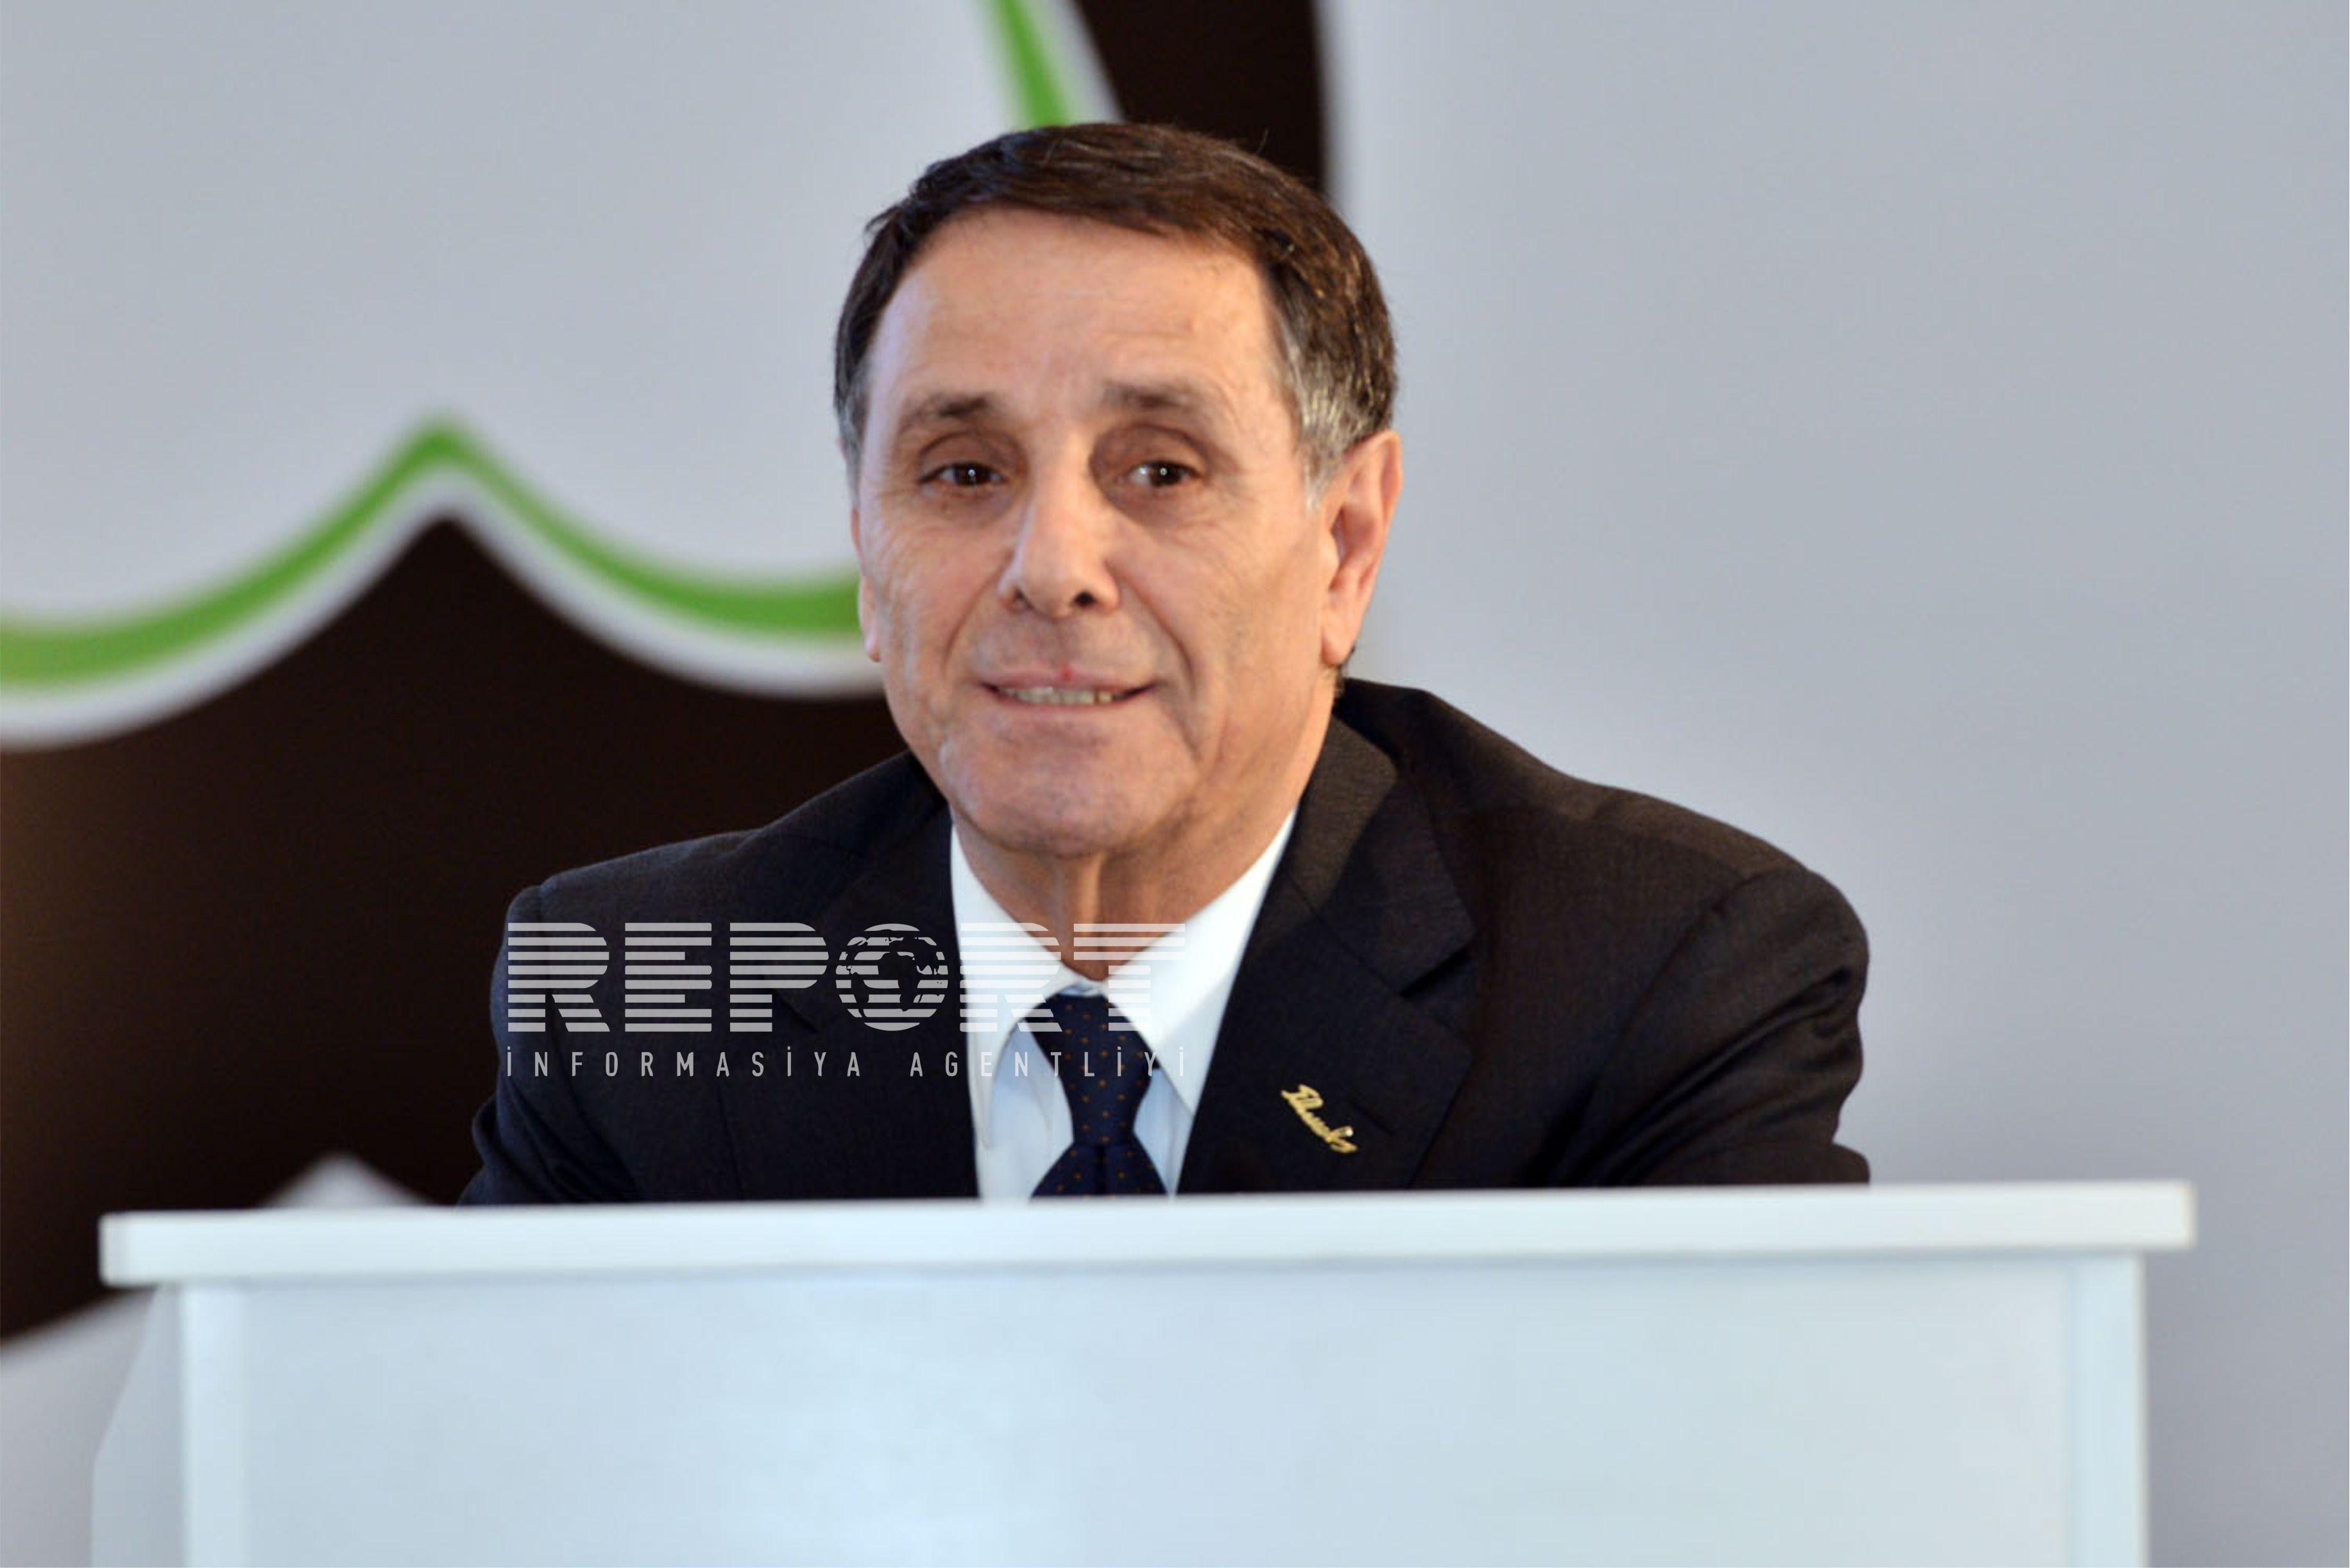 Novruz Mammadov: One aspect of EU's policy on Azerbaijan stands as telling indicator of double standards